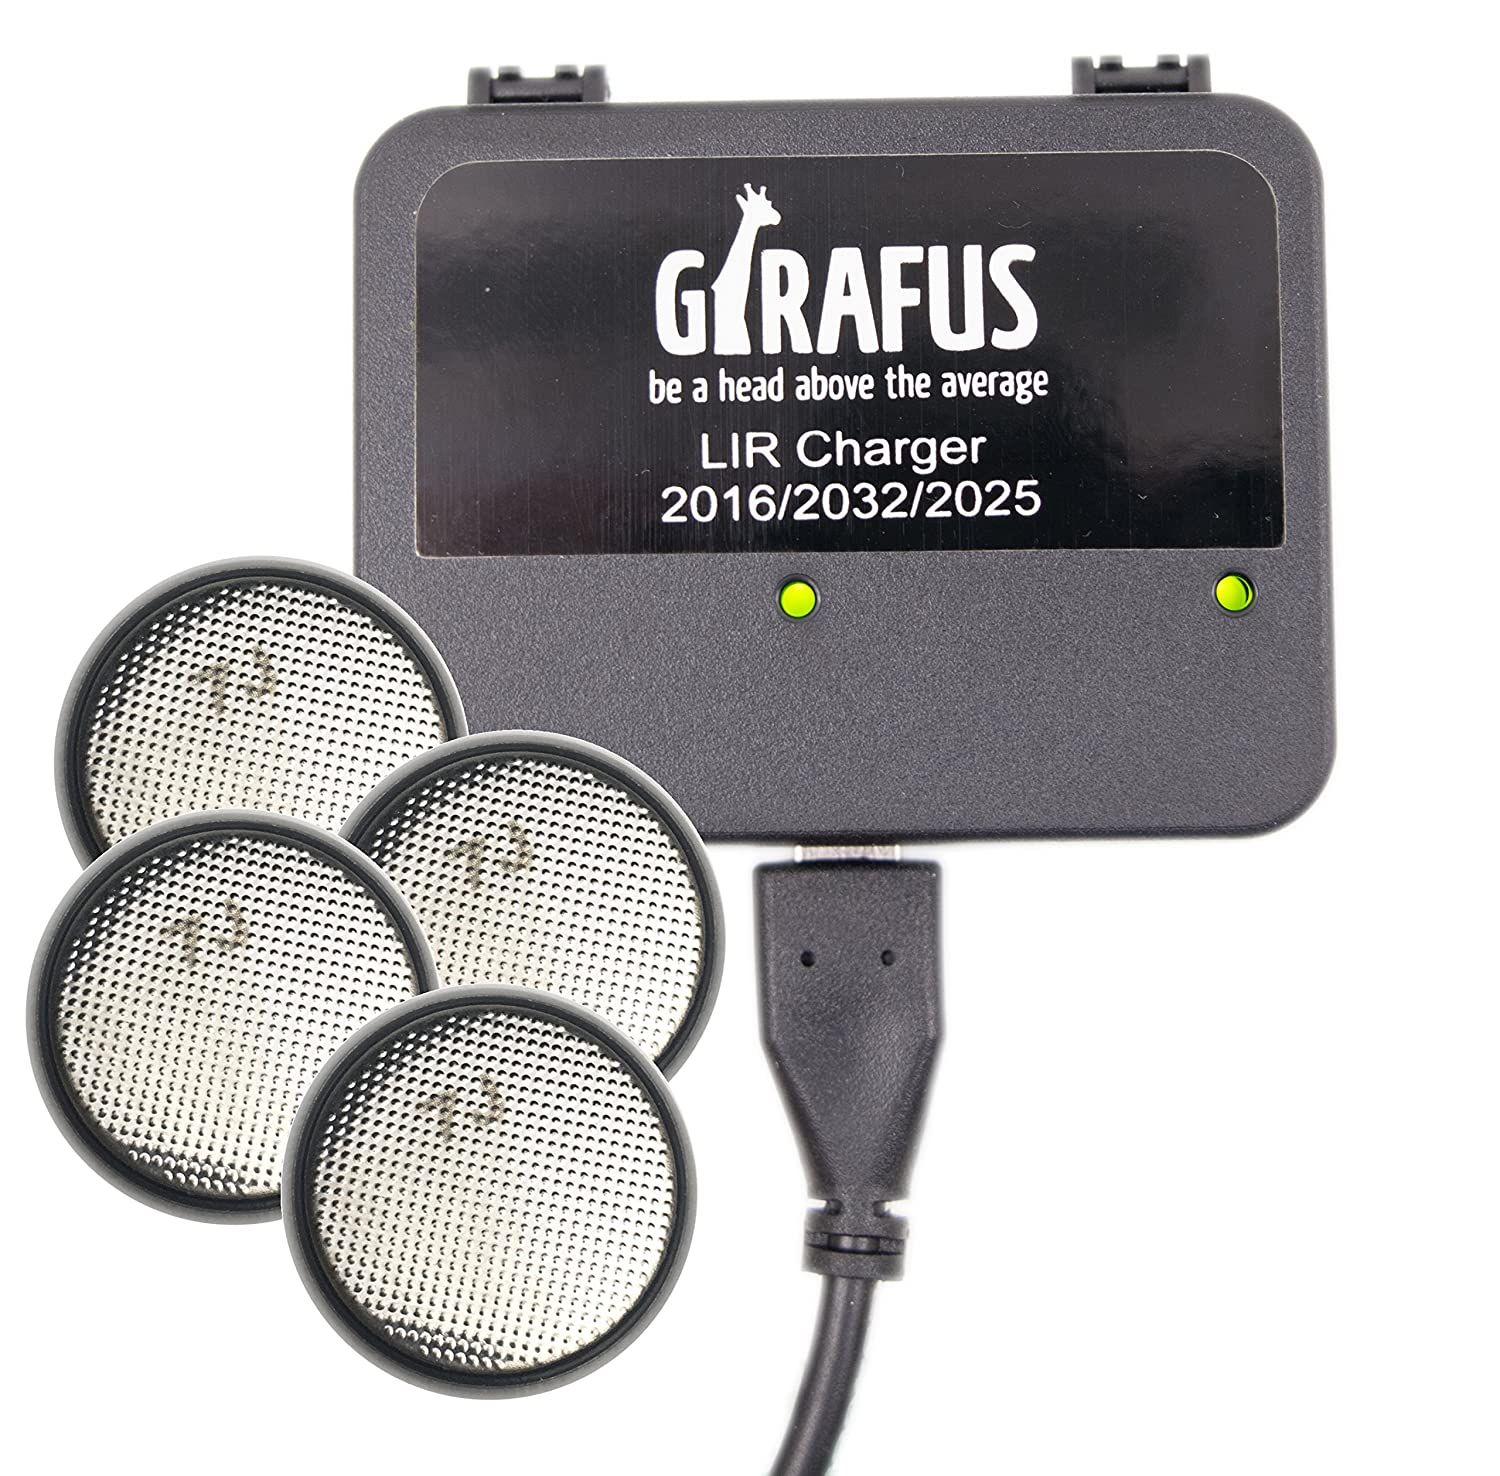 Girafus USB Coin Cell Battery Charger for LIR 2032/2016/2025 with 4X LIR2032 3.7V Rechargeable Batteries Included - Replaces CR2032 Girafus Technologies 4260462370387